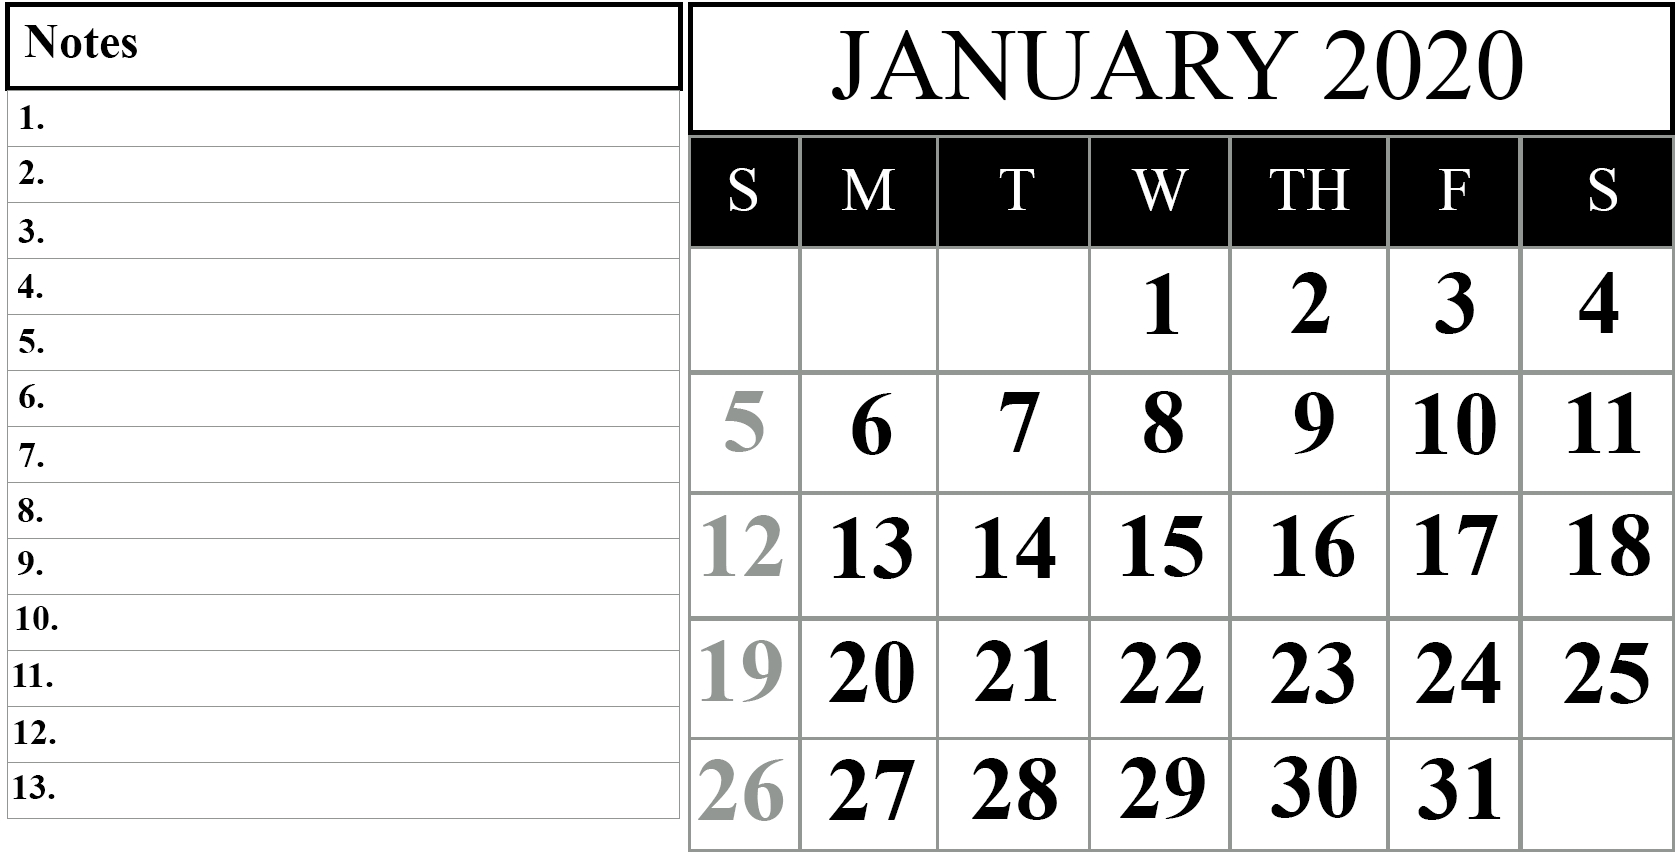 January 2020 Calendar With Notes #january #january2020